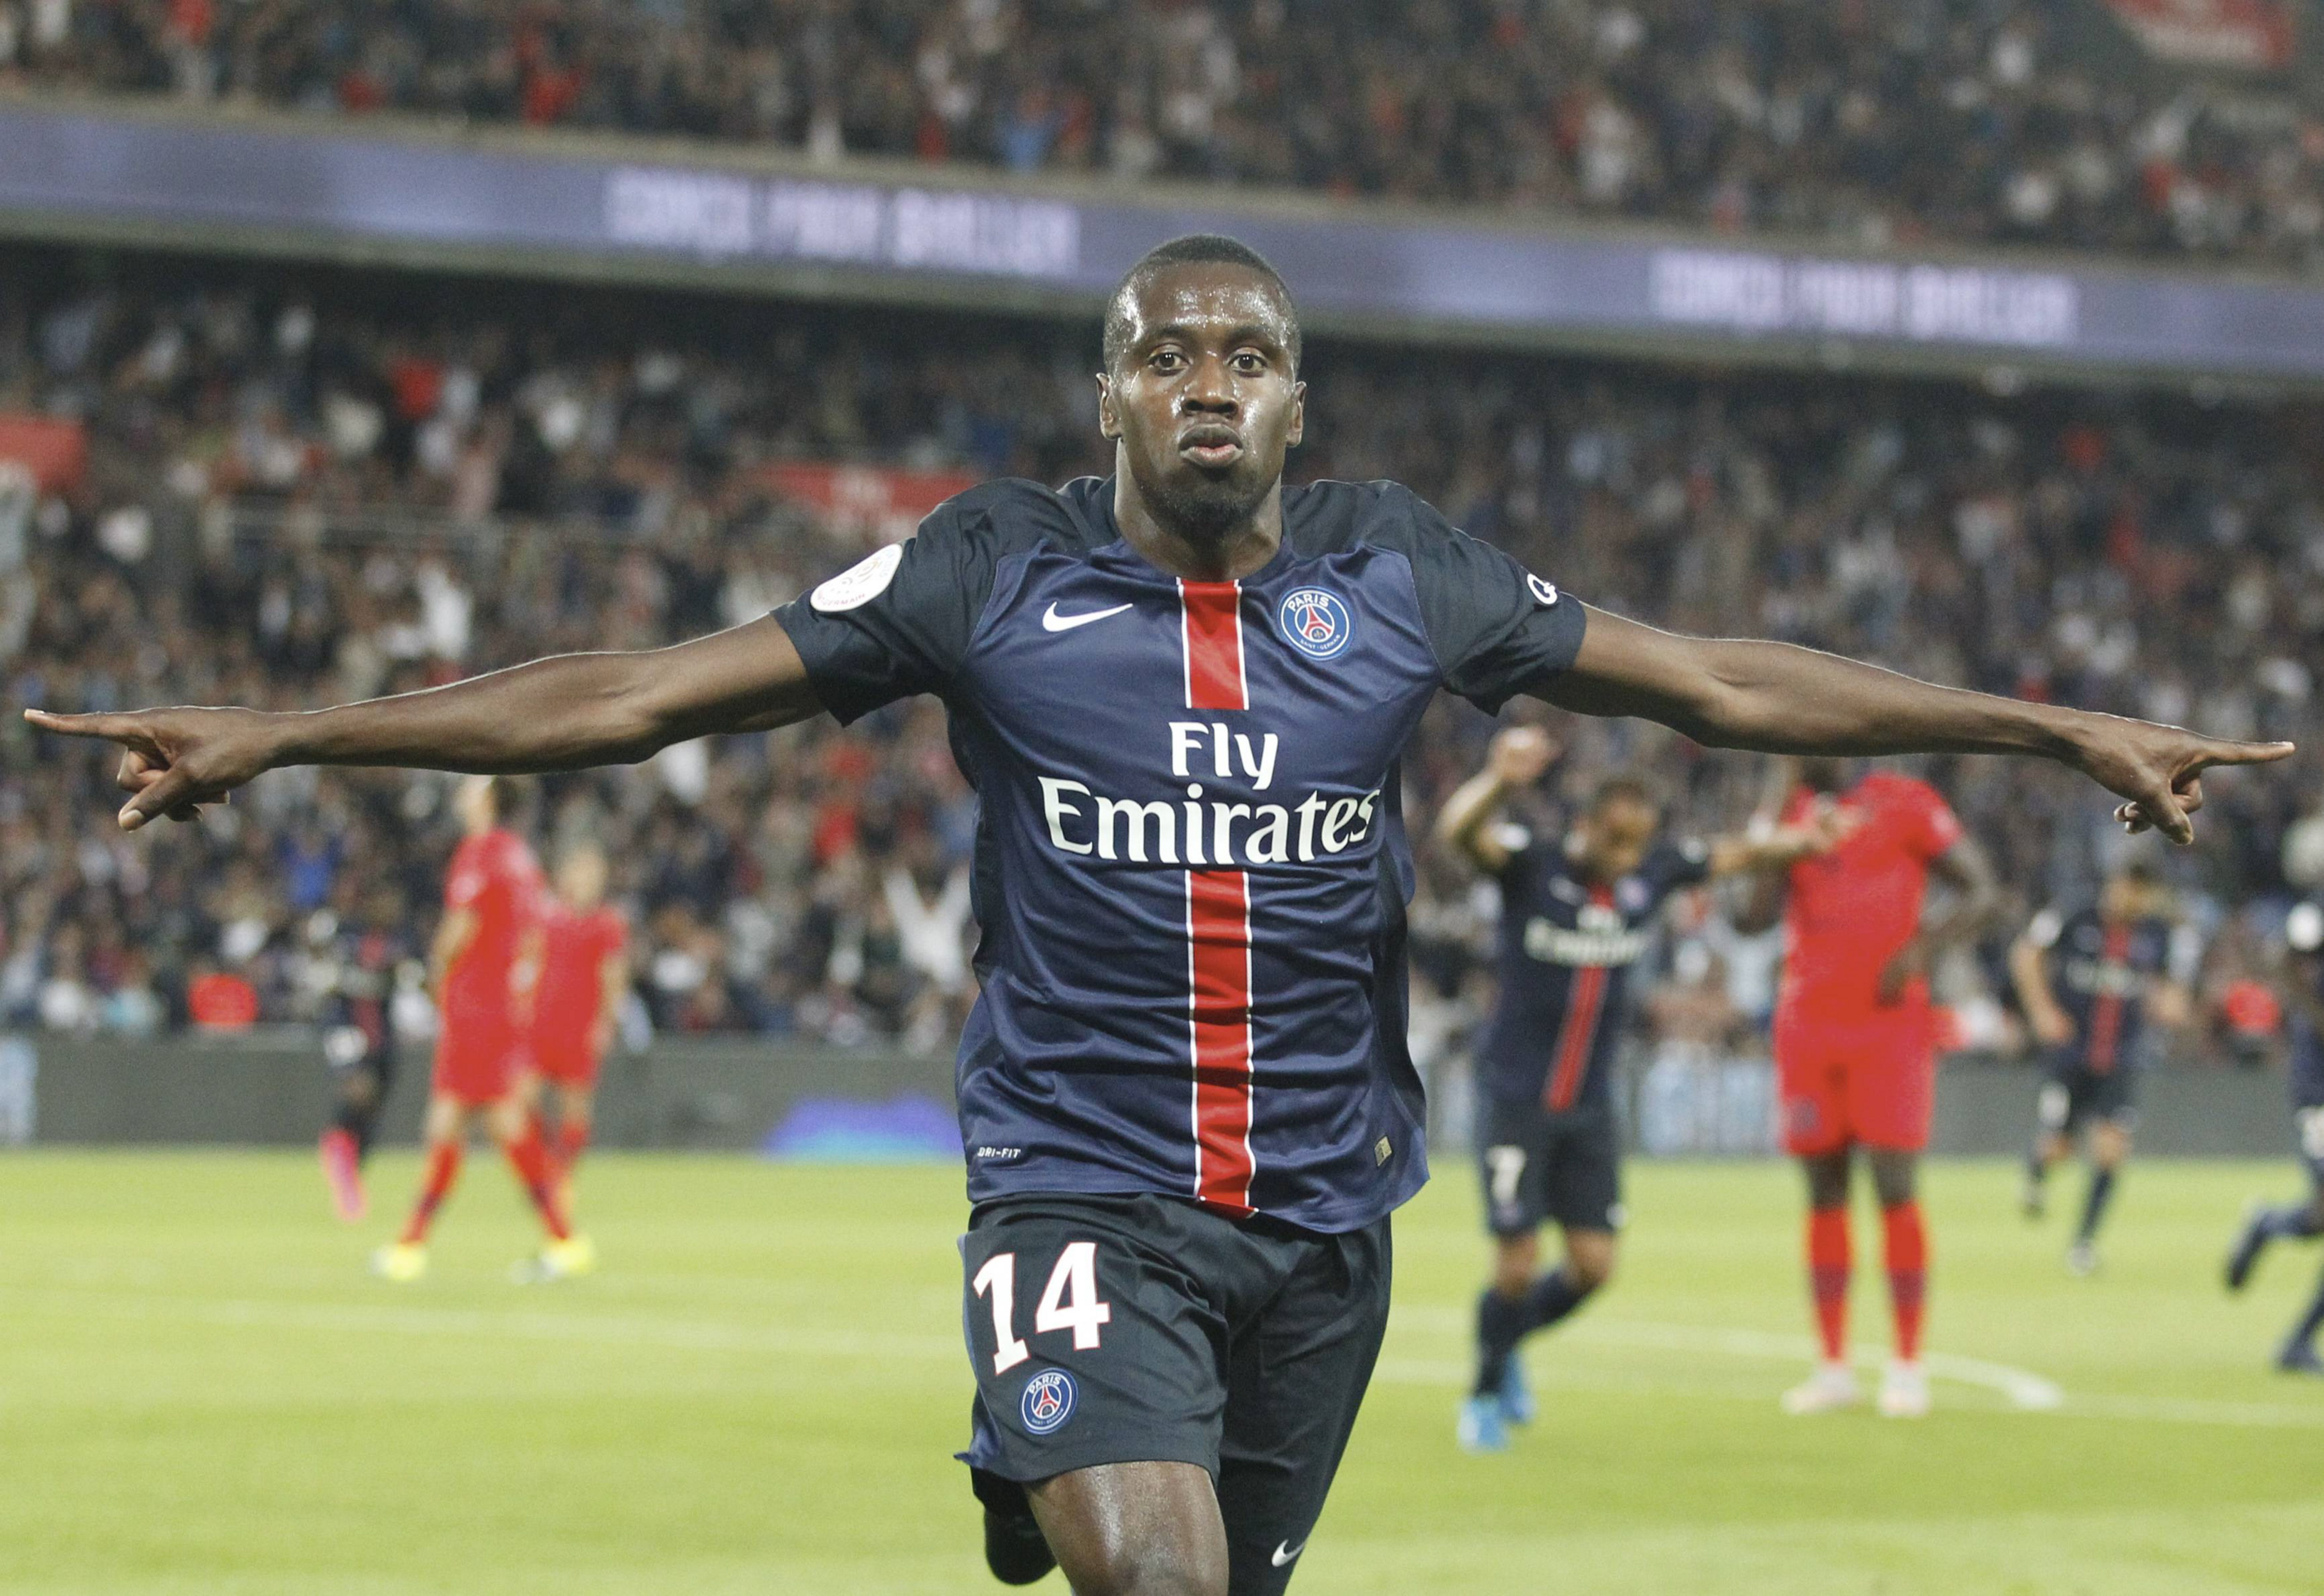 Chelsea and Manchester United on alert for Blaise Matuidi transfer after Unai Emery hint